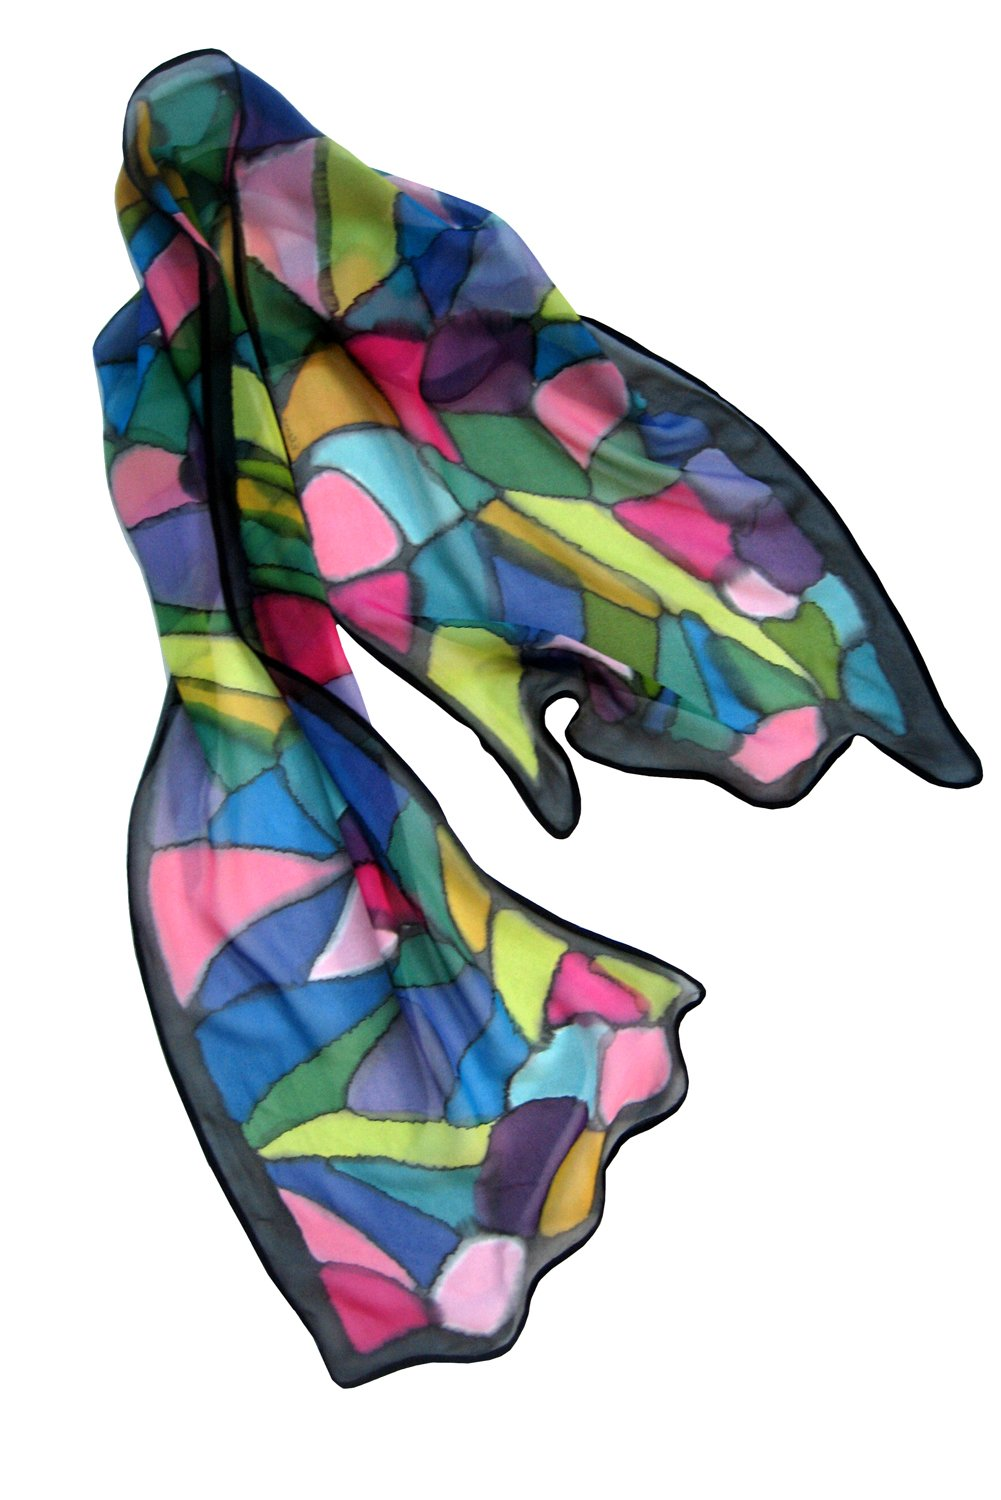 ArtisanStreet's Stained Glass Hand Painted Silk Scarf by ArtisanStreet